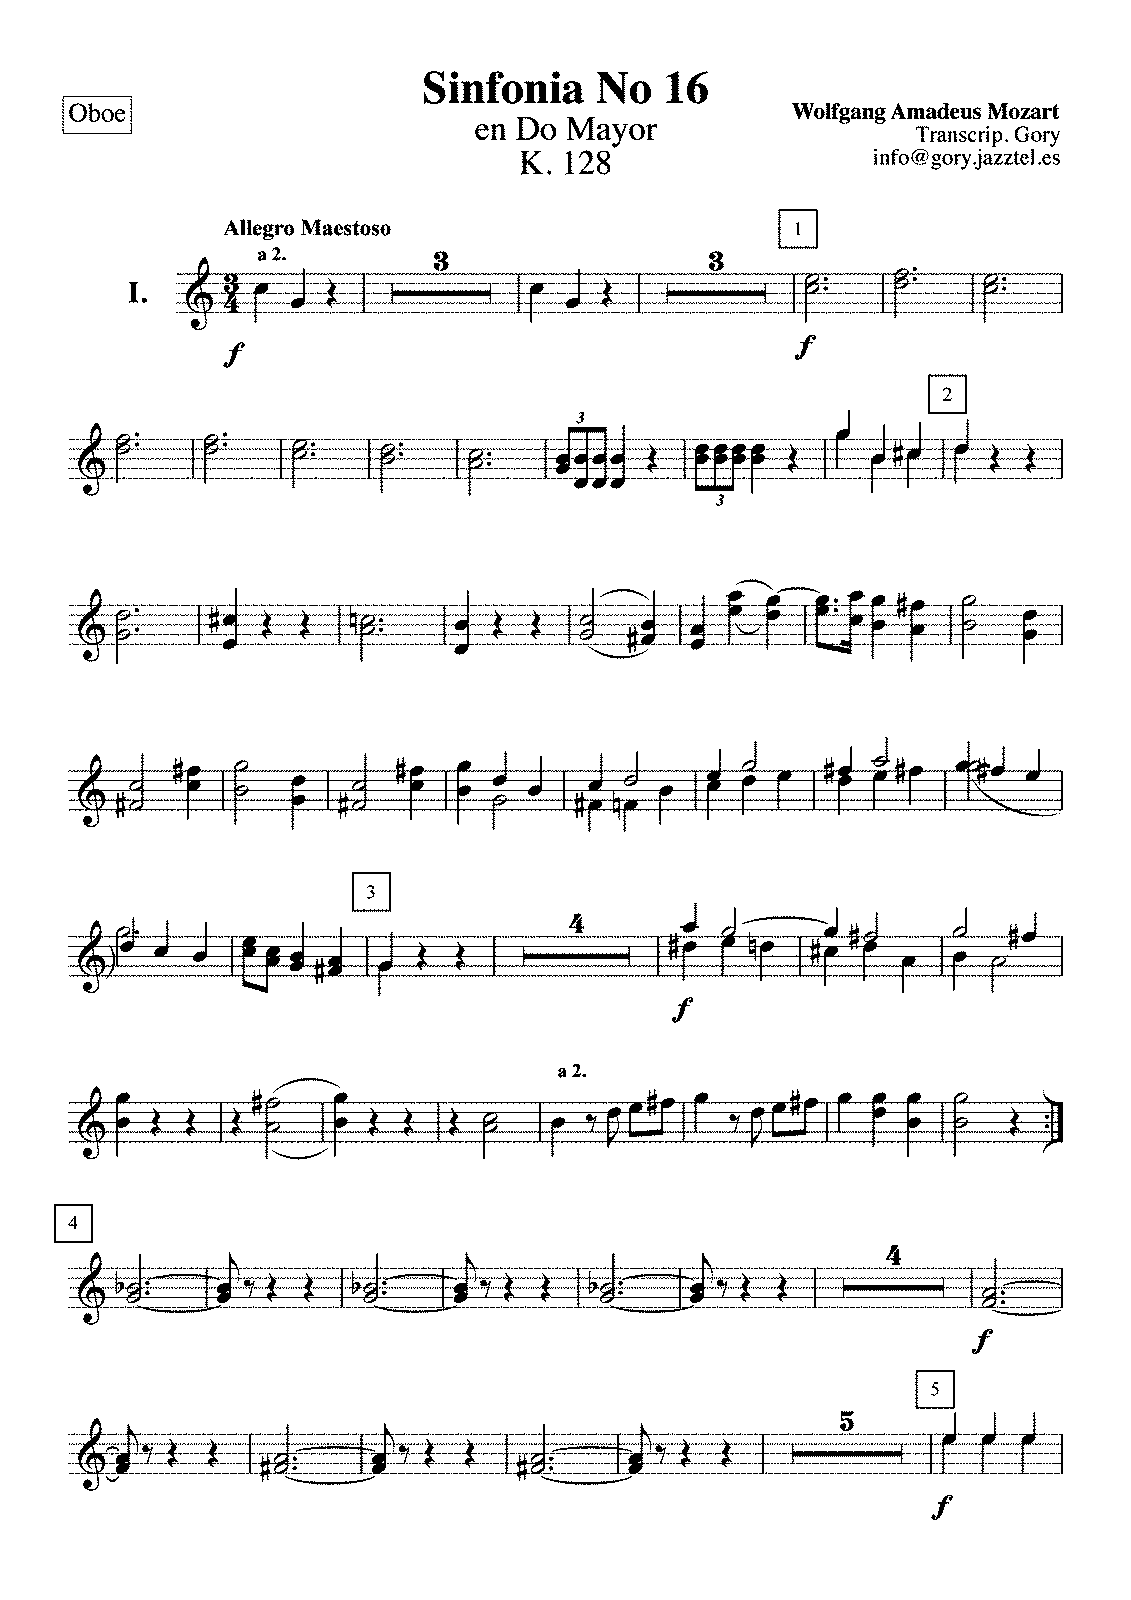 PMLP01530-Sinfonia nº 16 en Do mayor - Oboe.pdf